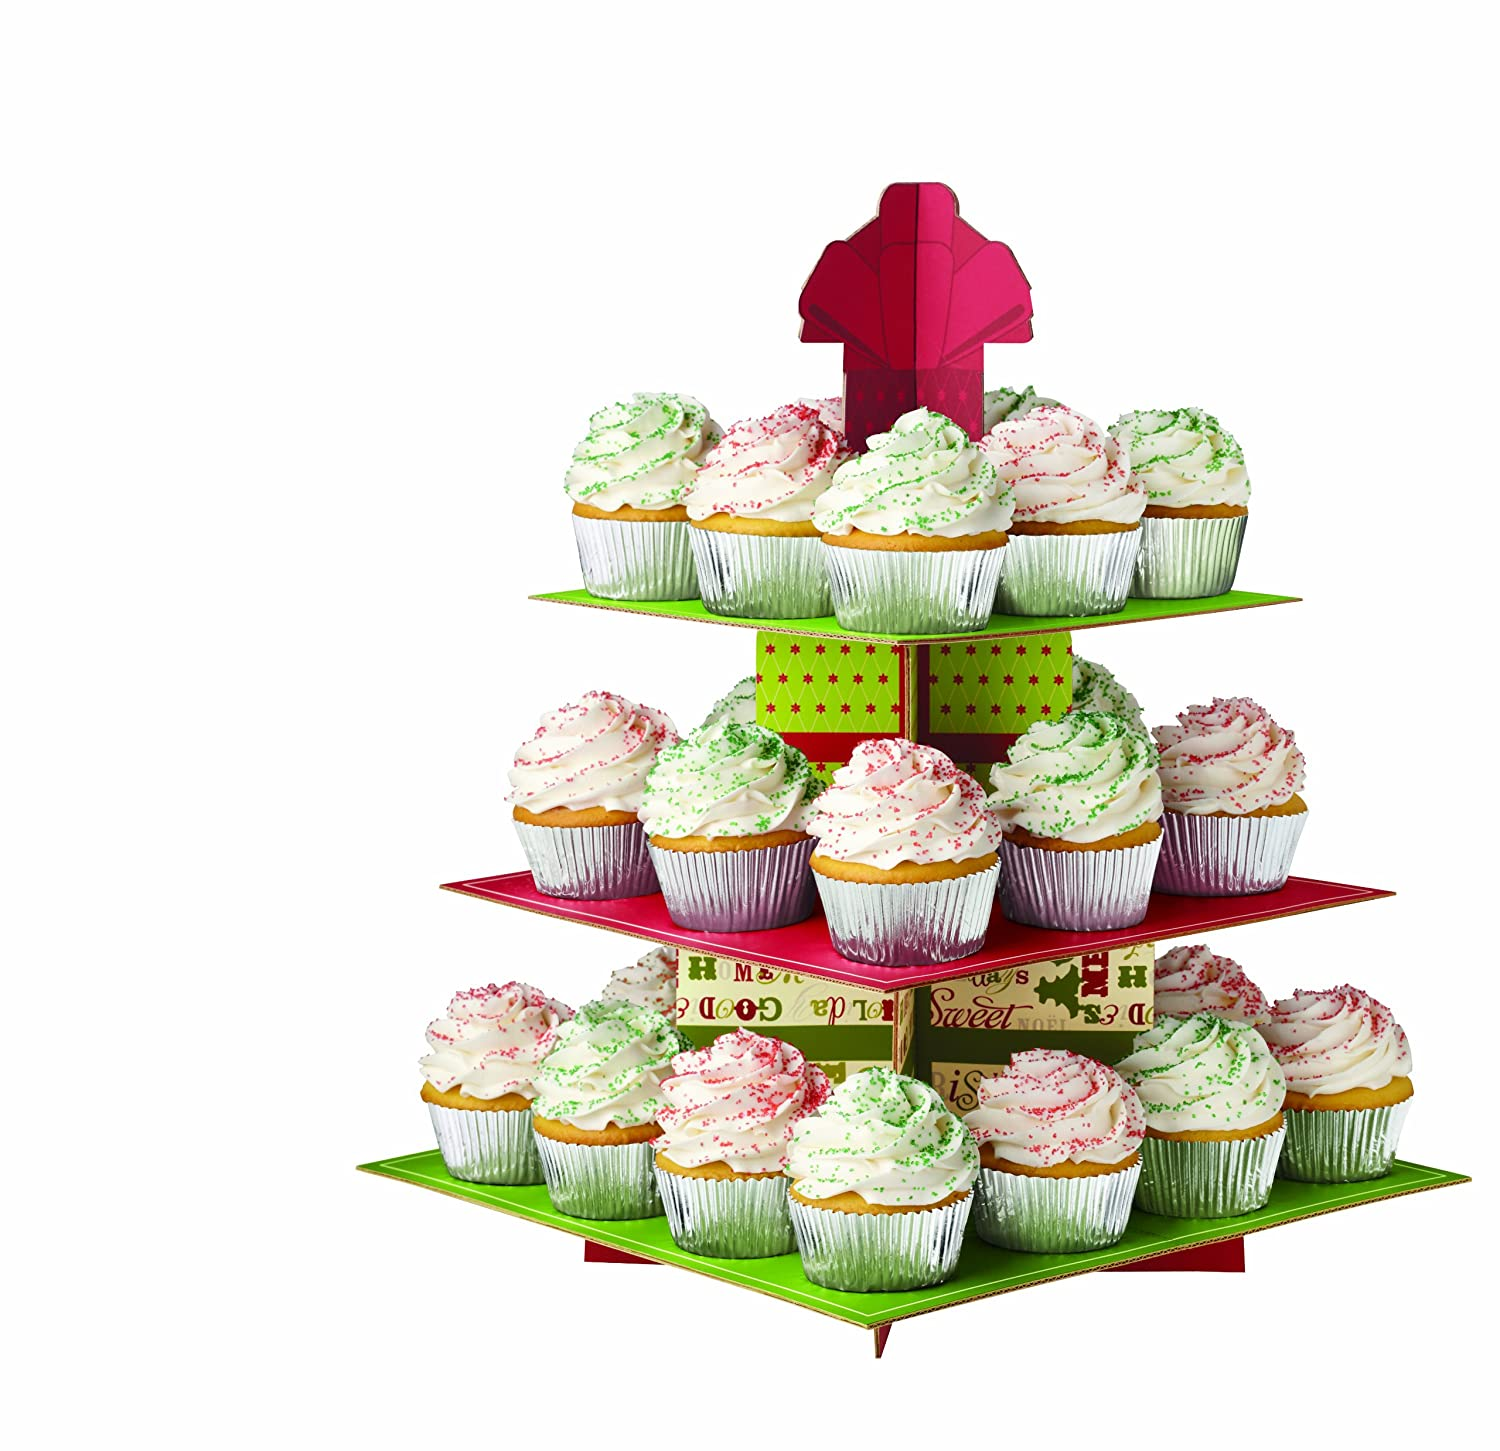 Wilton Black Borders Cupcake Stand 1512-0860